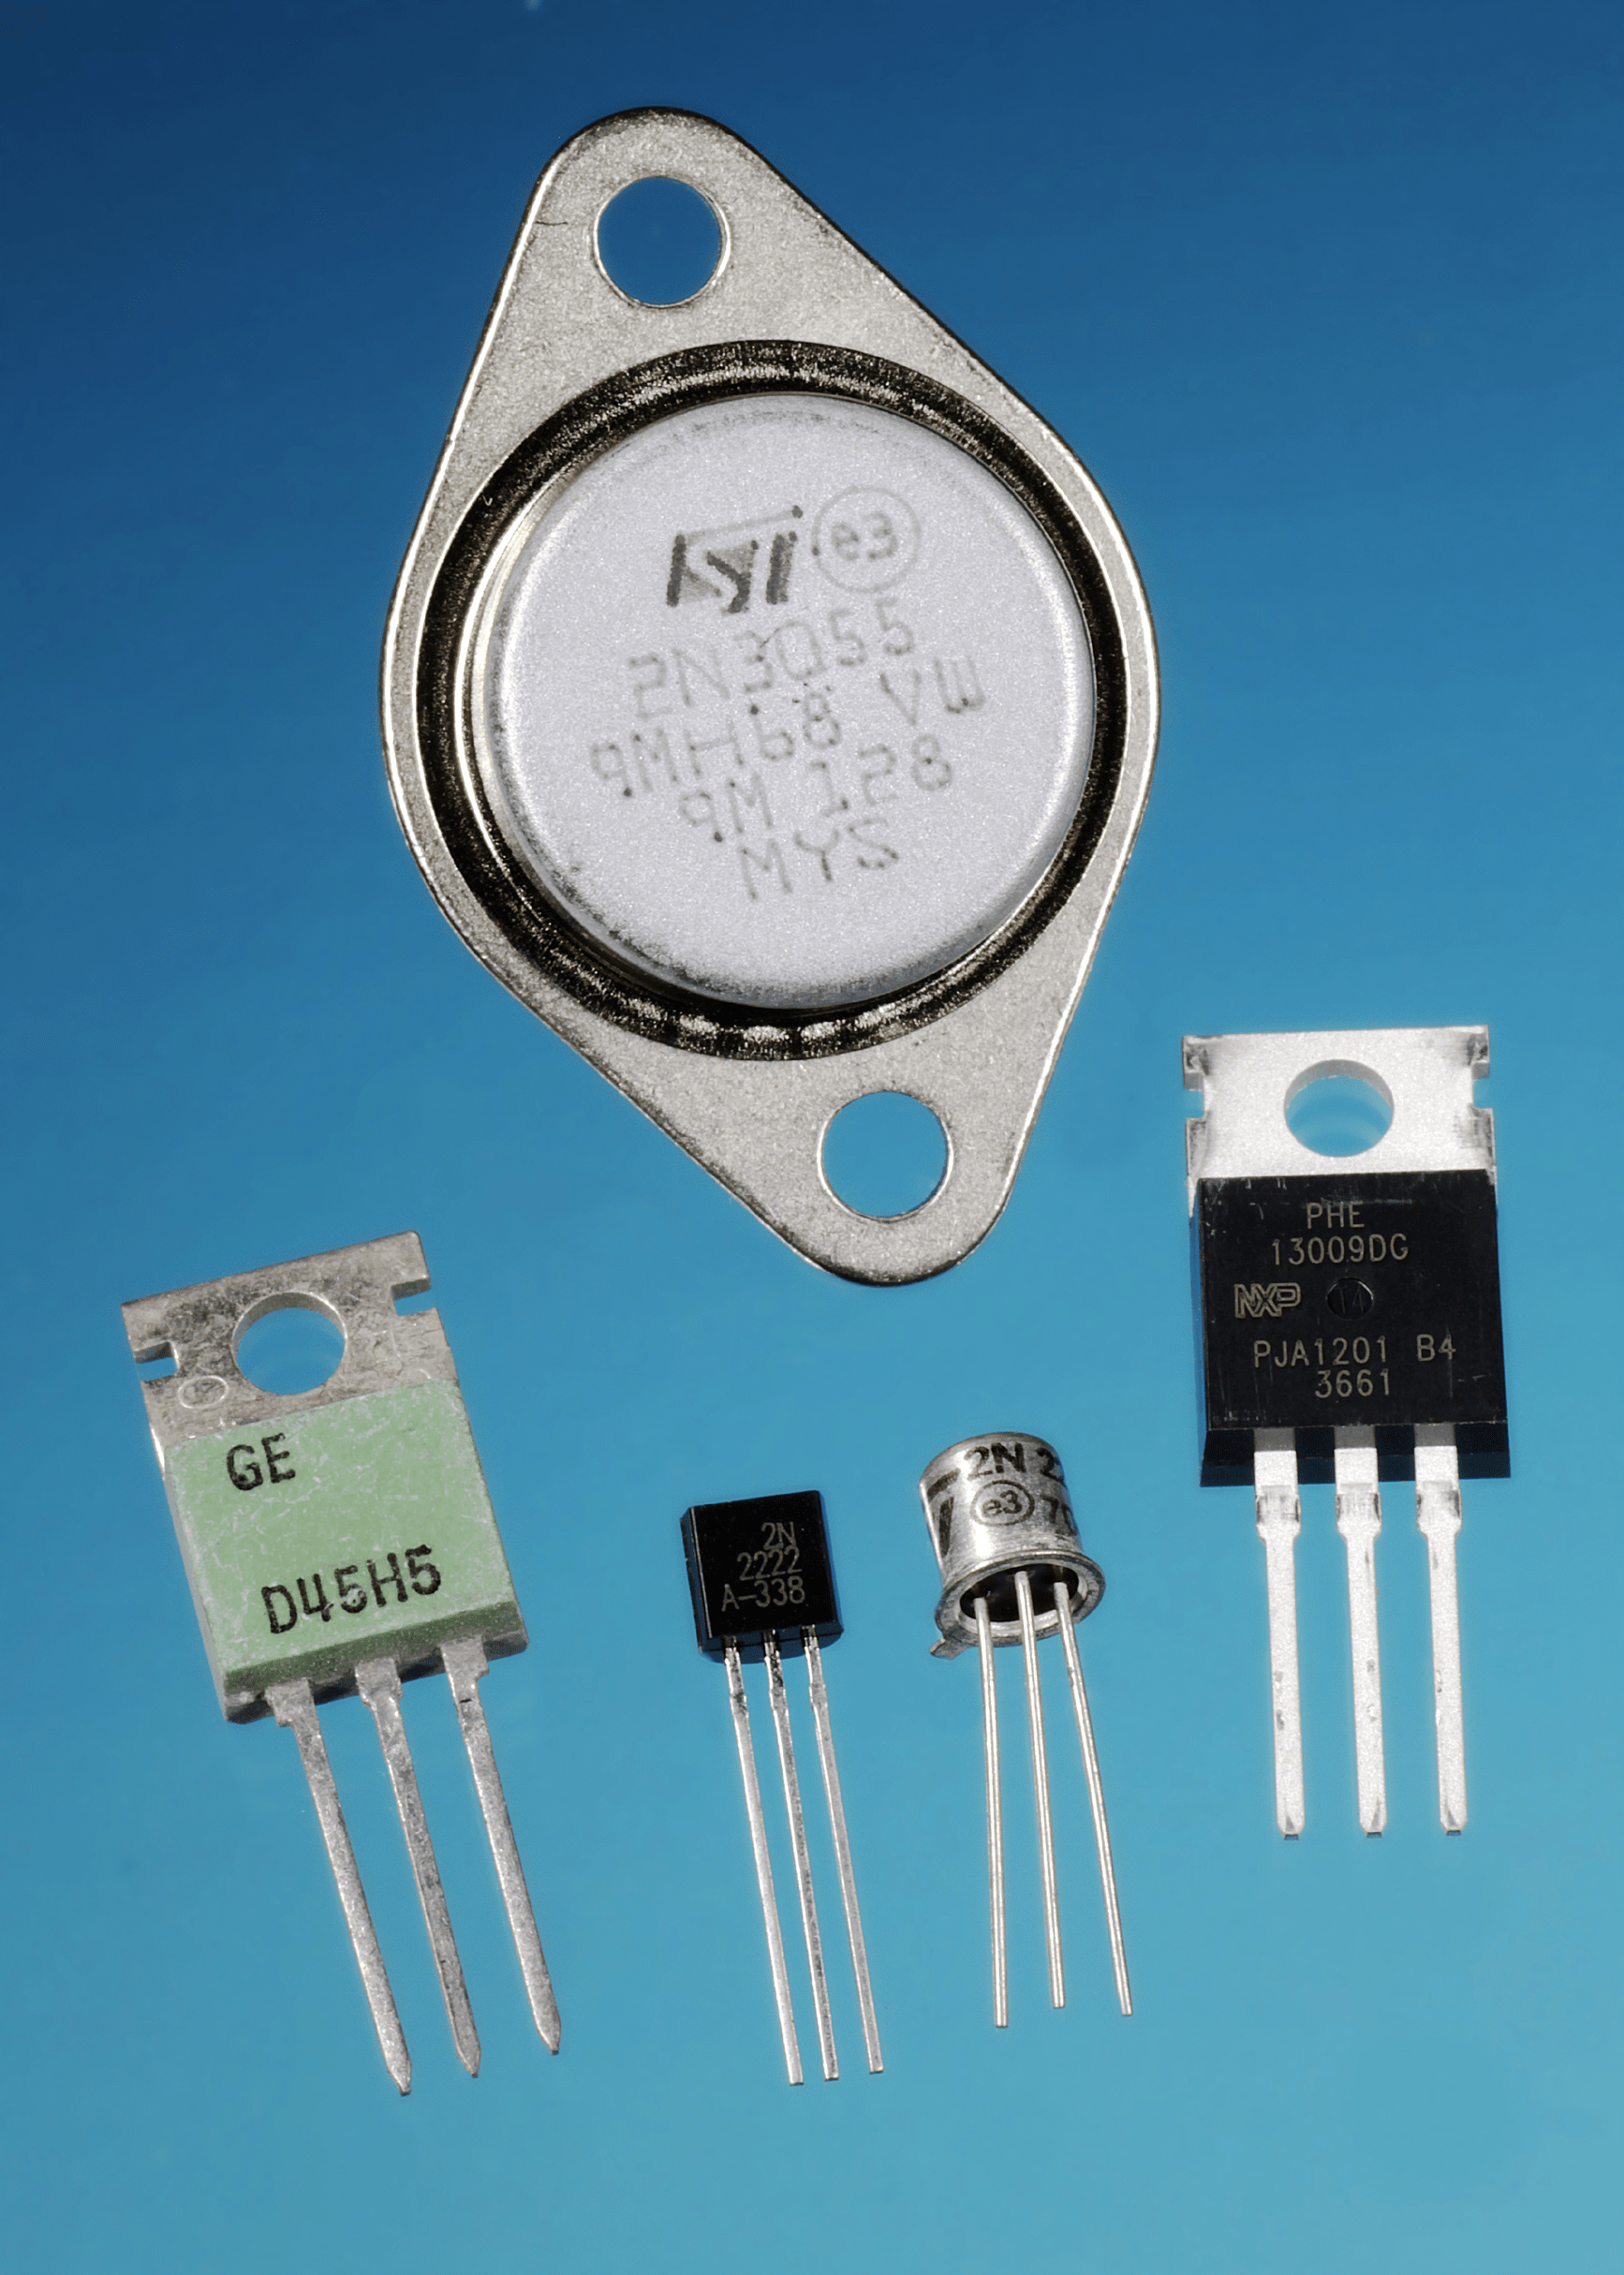 Component of the Month: The Transistor